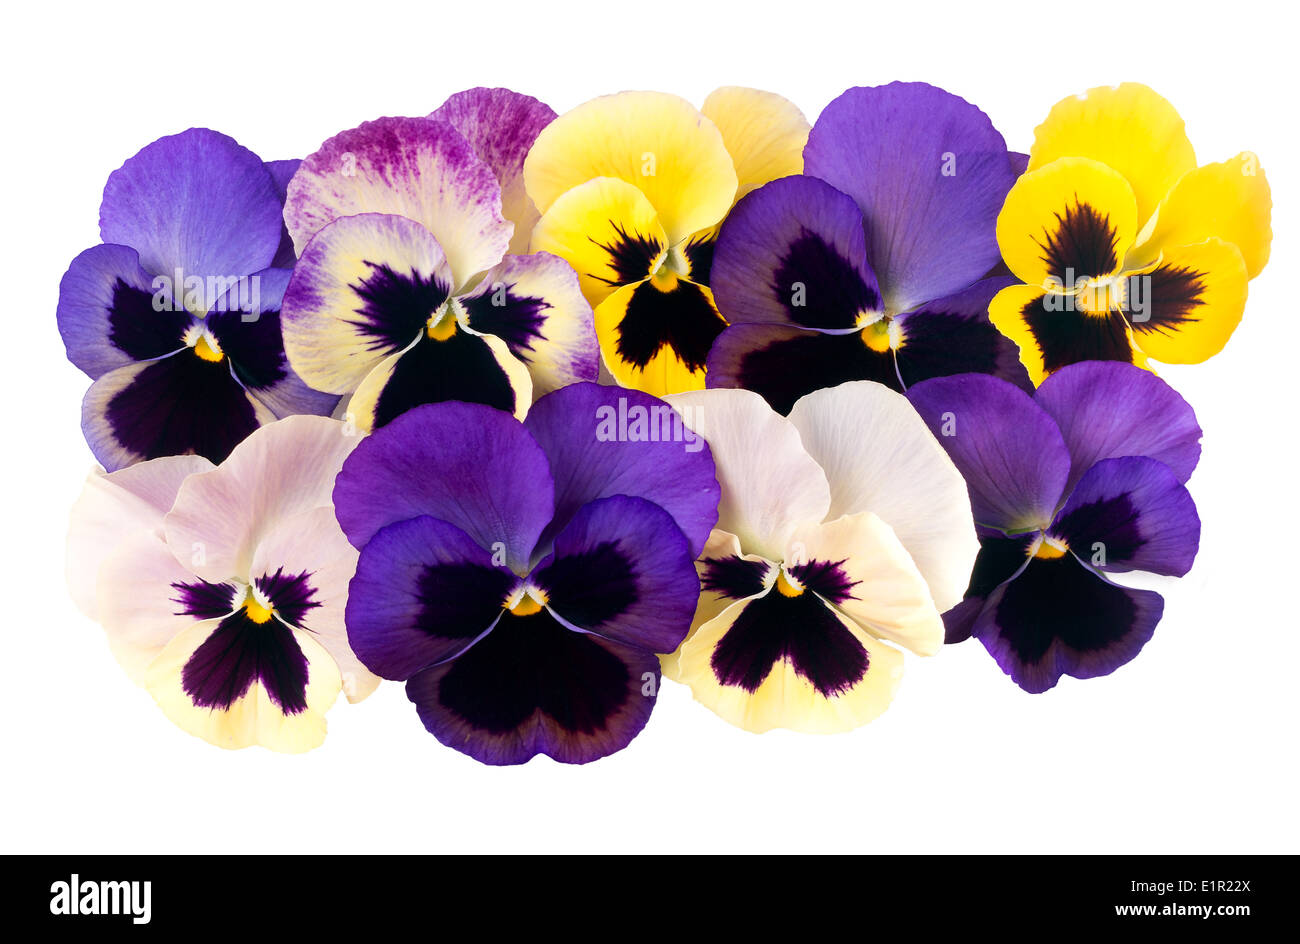 Beautiful pansies isolated over white. - Stock Image